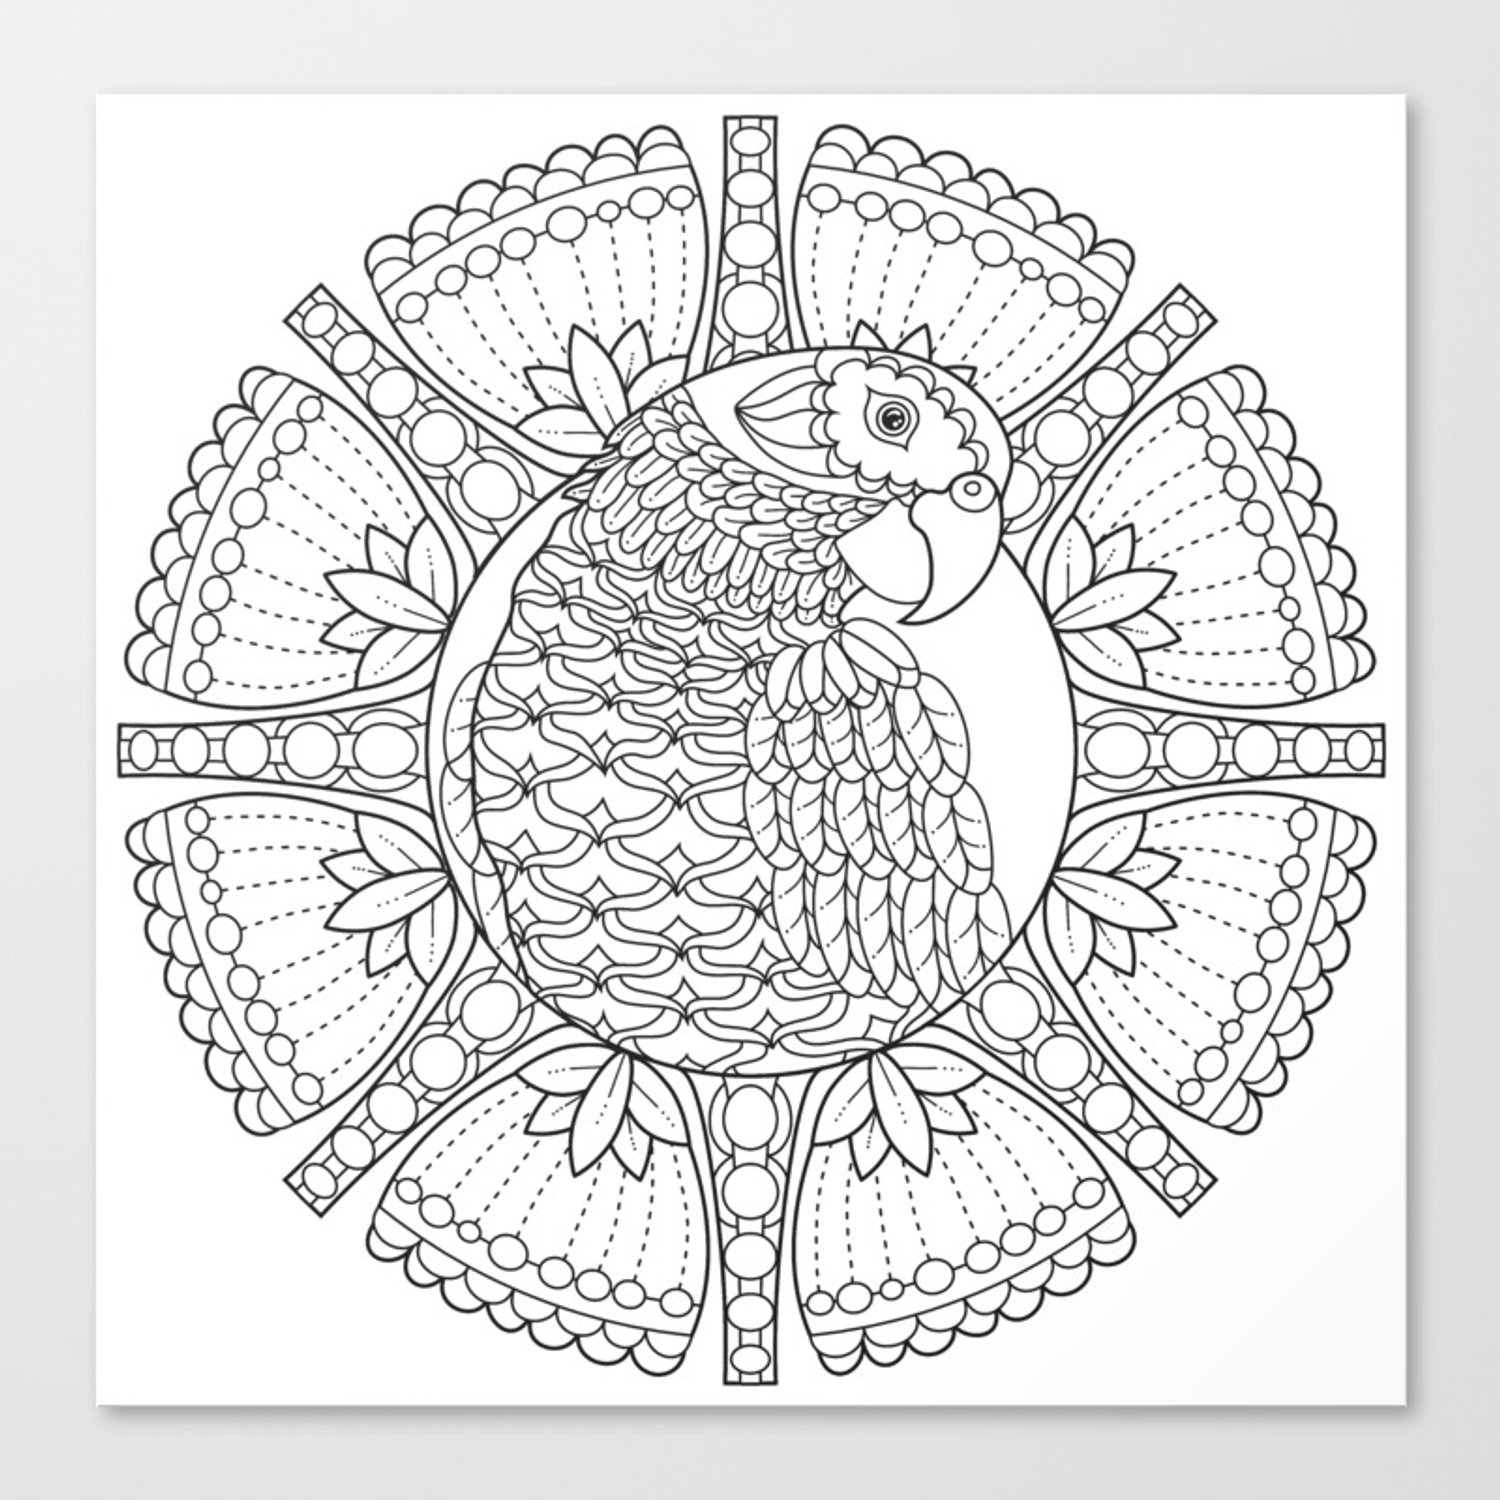 Parrot Mandala Color Your Own Coloring Art Canvas Print By